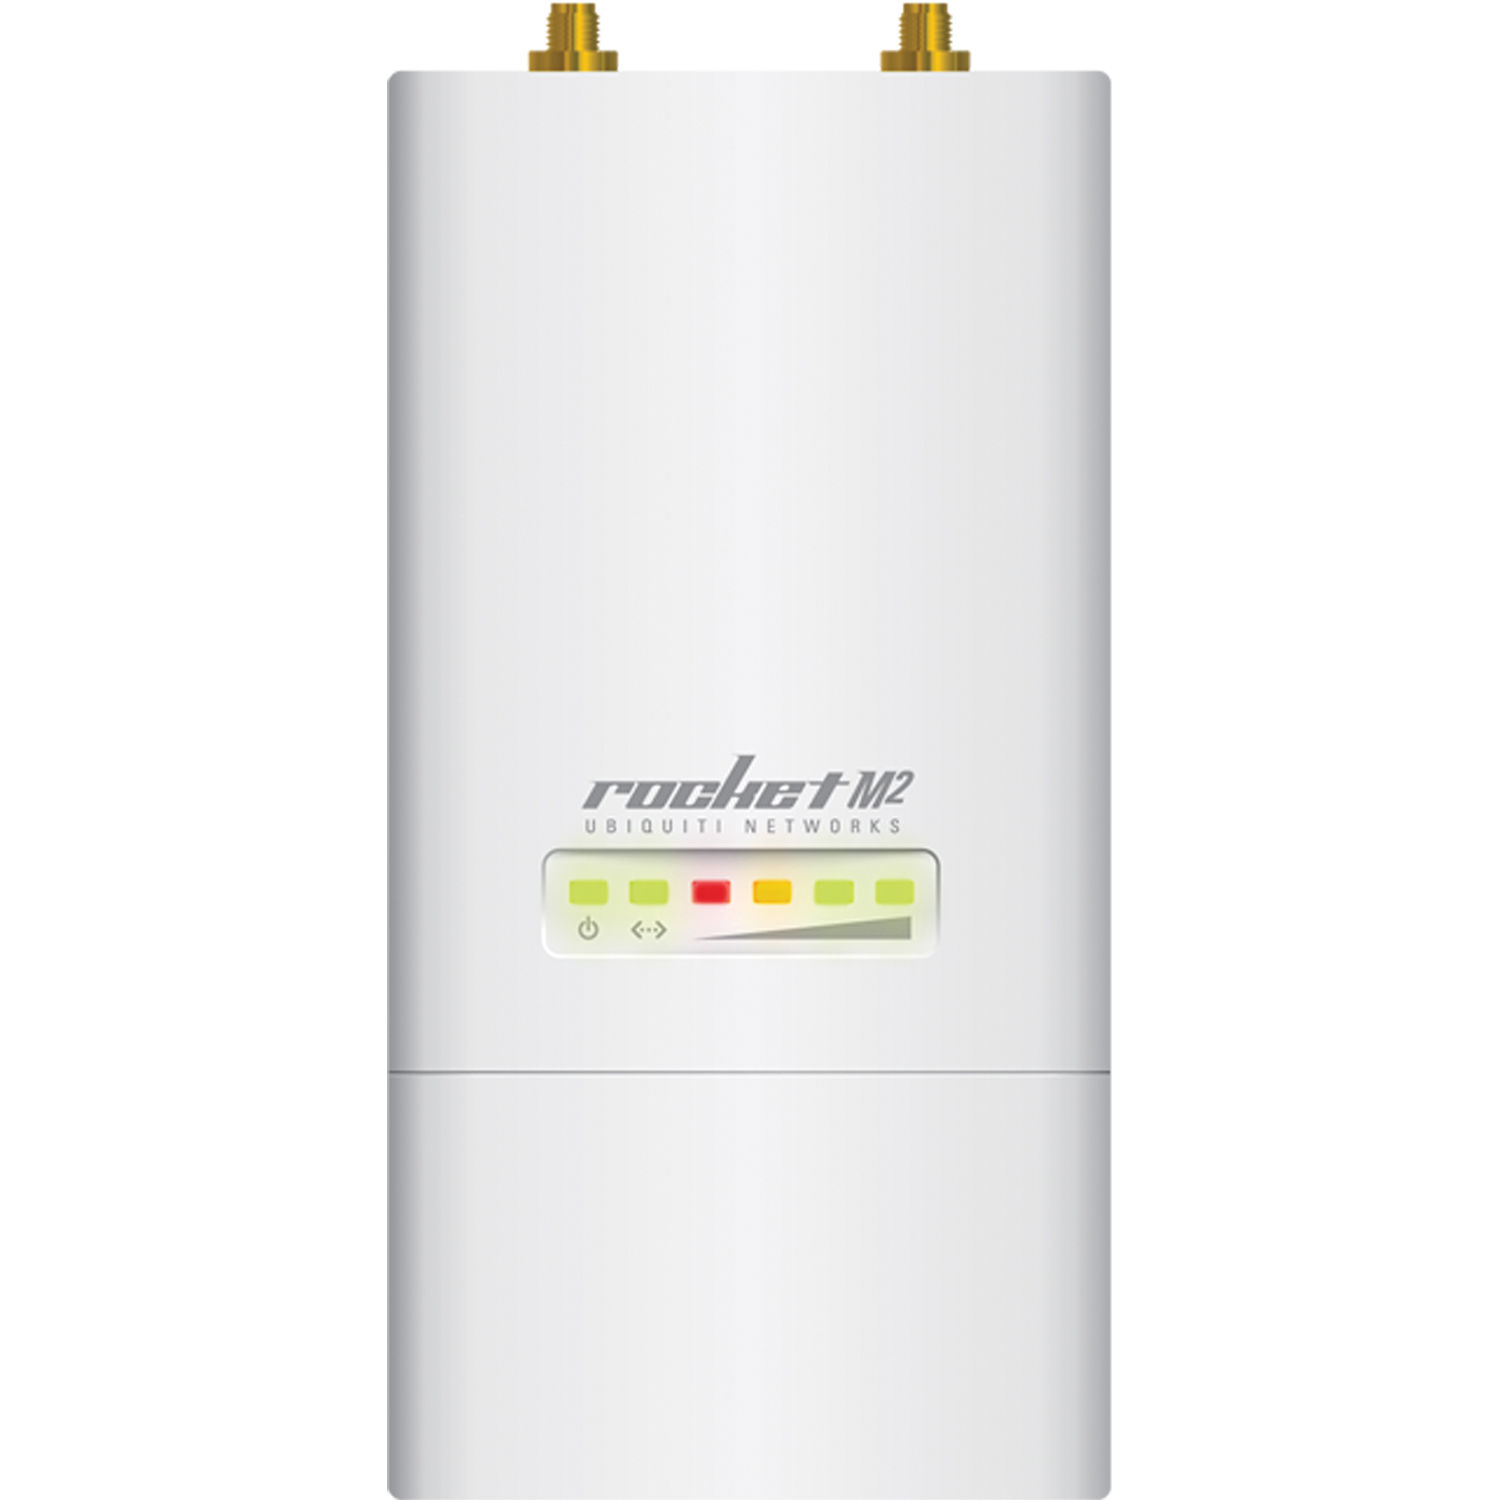 Ubiquiti Networks RocketM2 2 4 GHz 2x2 MIMO airMAX BaseStation